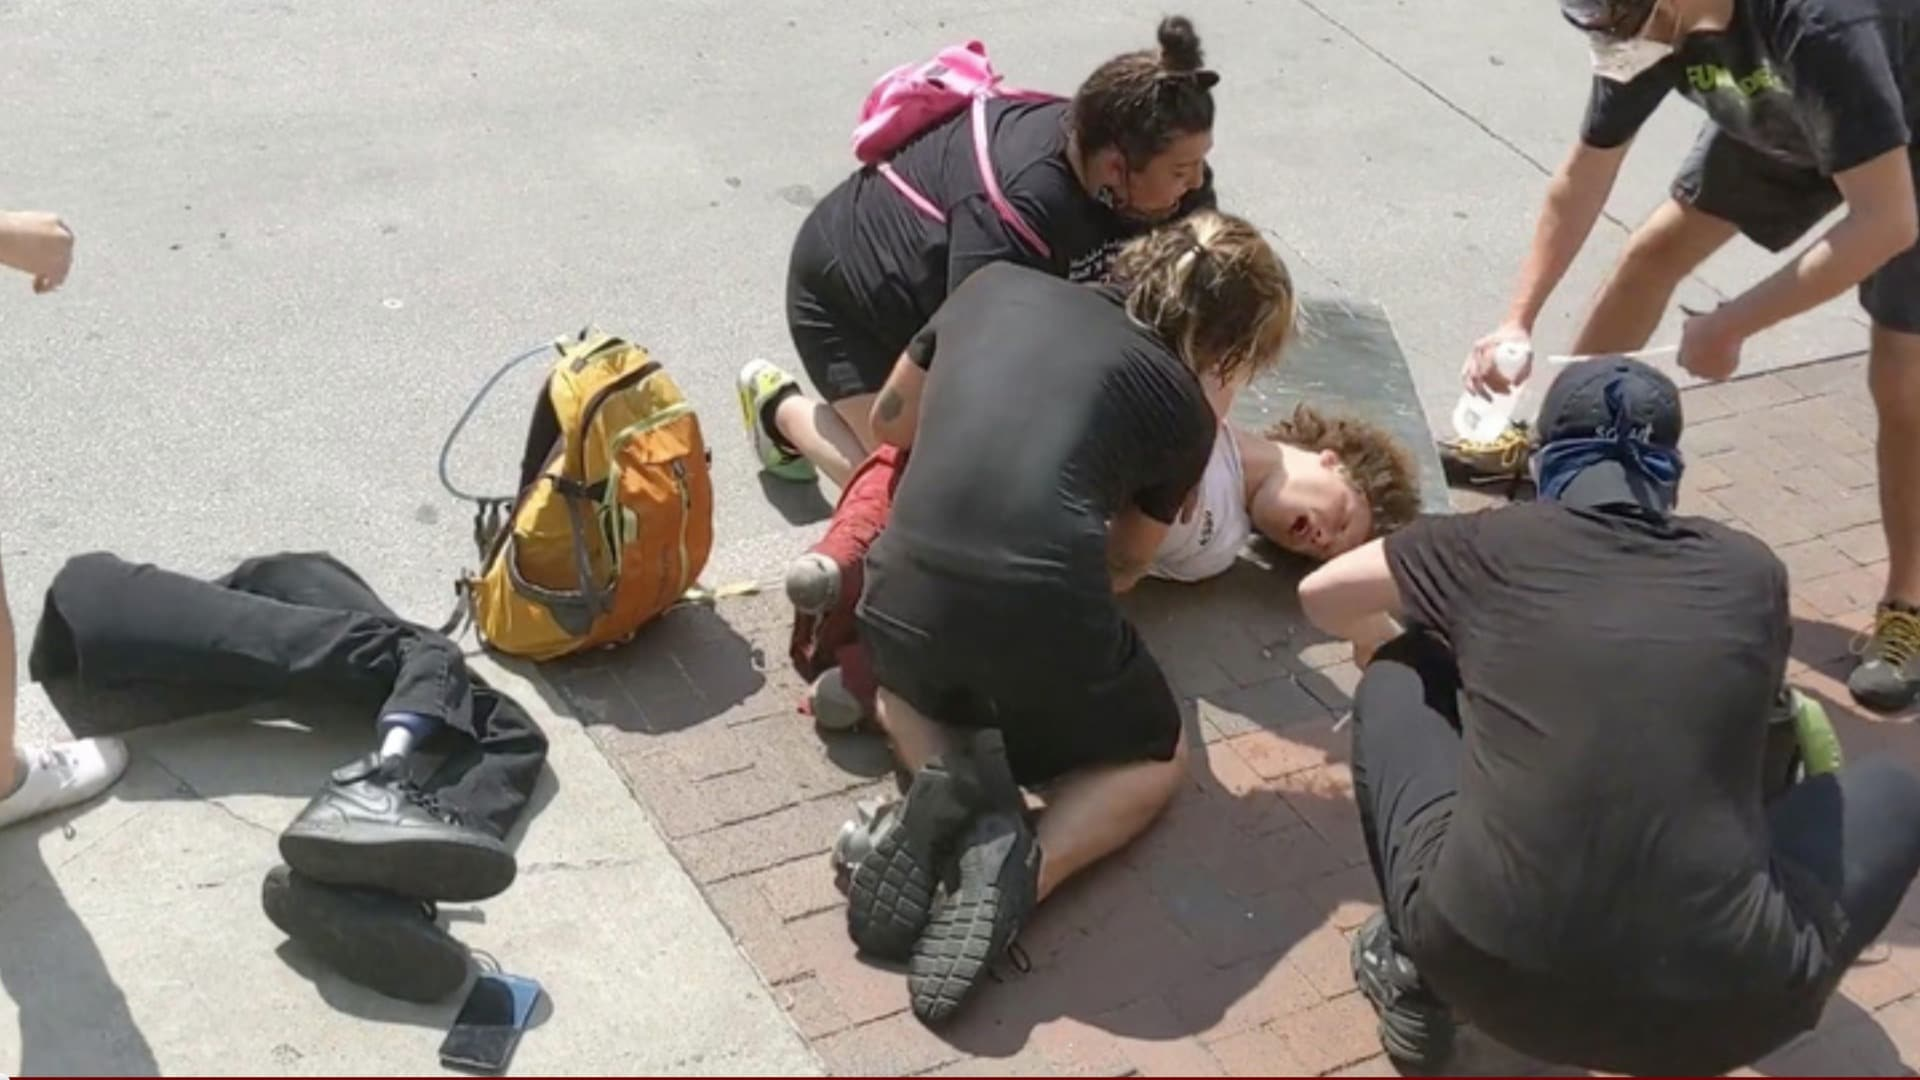 Double amputee protester pepper sprayed by Ohio police - TheGrio